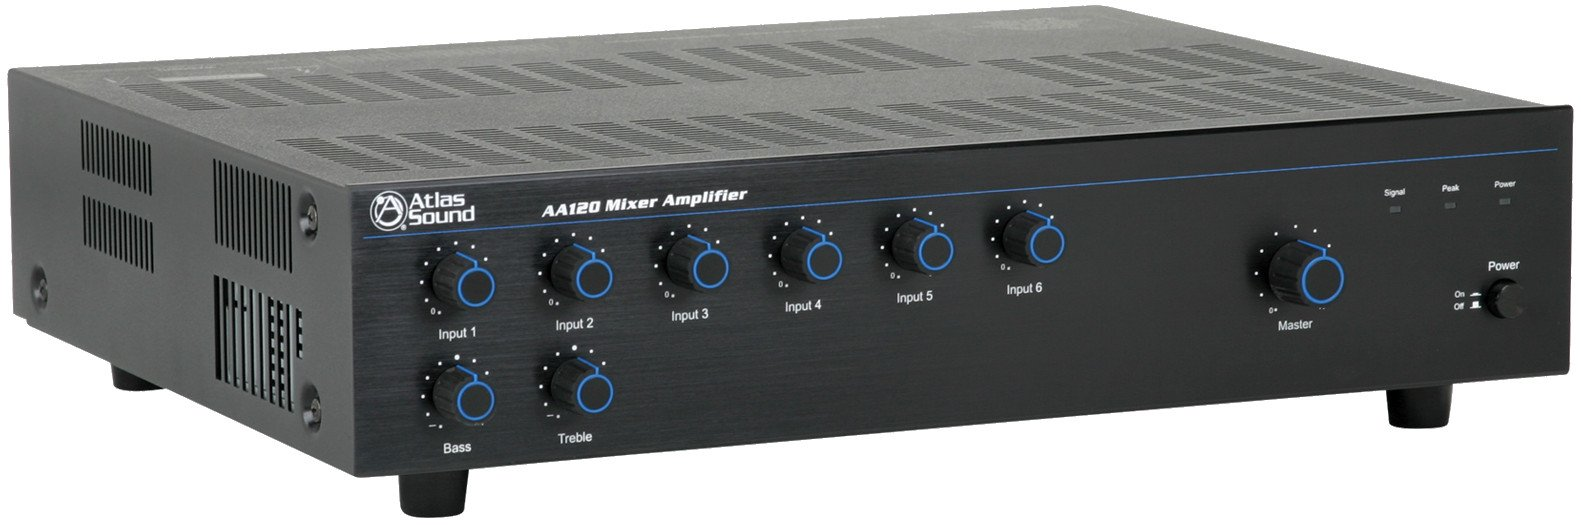 6 Channel 120W Amplifier / Mixer